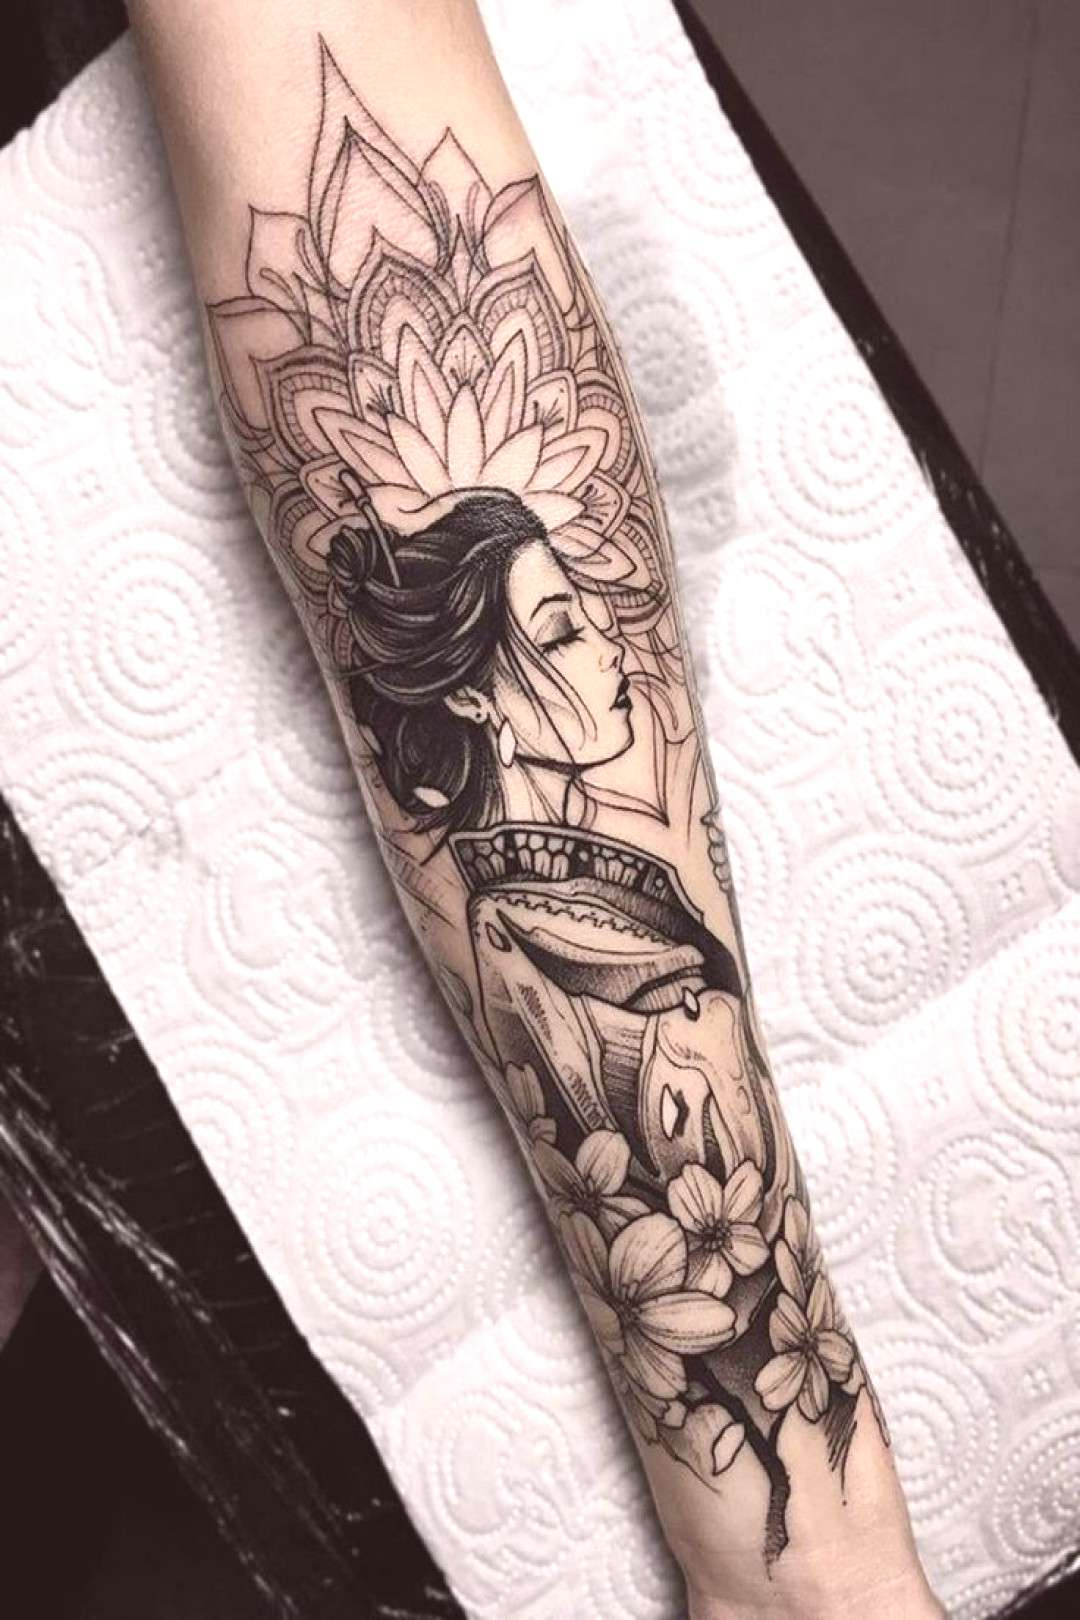 Geisha Tattoos Blackwork Irezumi Tattoos Geisha tattoos blackwork ; geisha tattoos blackwork ; geis